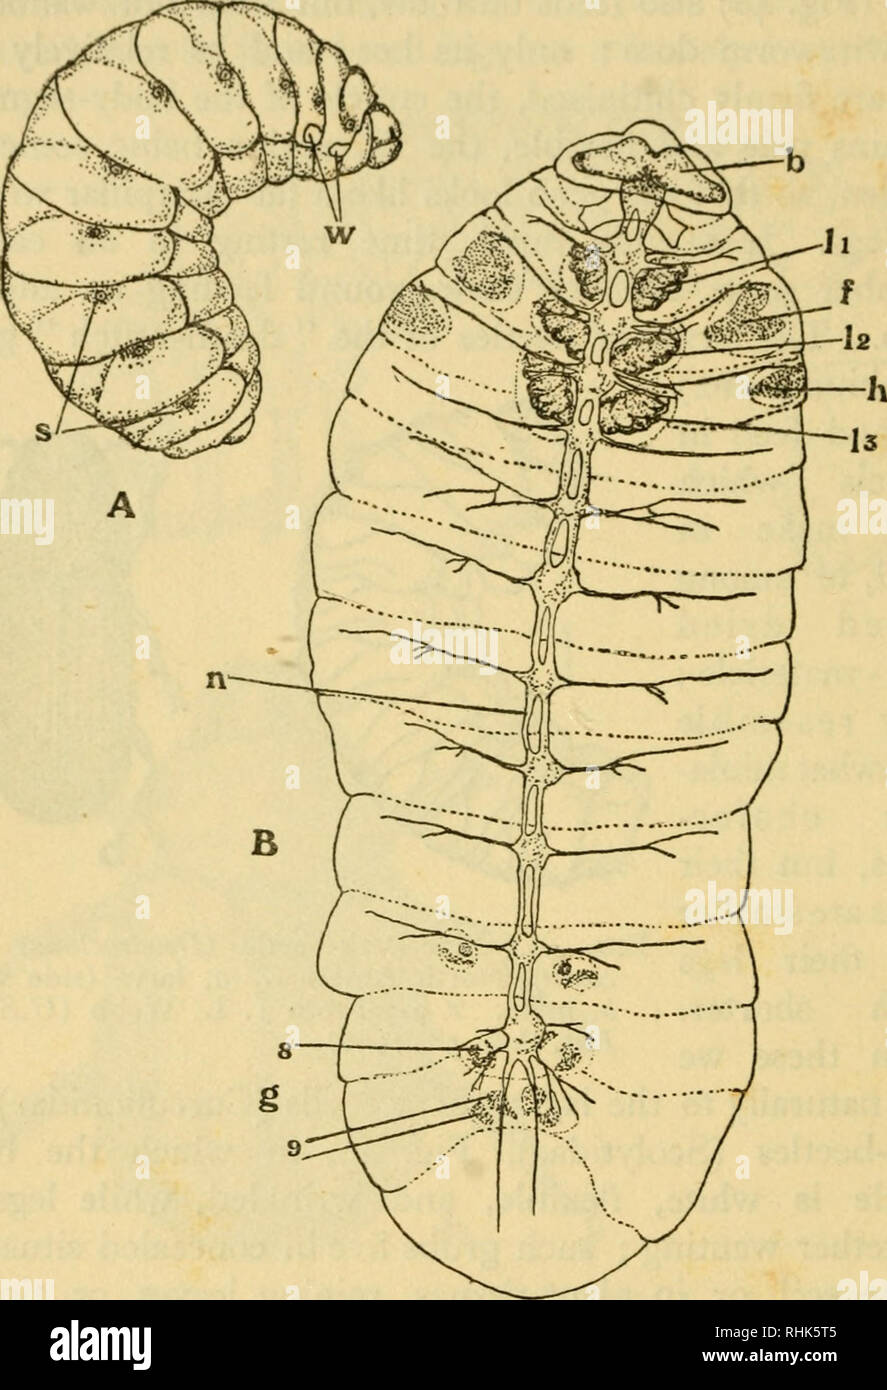 medium resolution of insects biology i8o the biology of insects among the two winged flies diptera all the larvae are destitute of true legs and in the house fly and